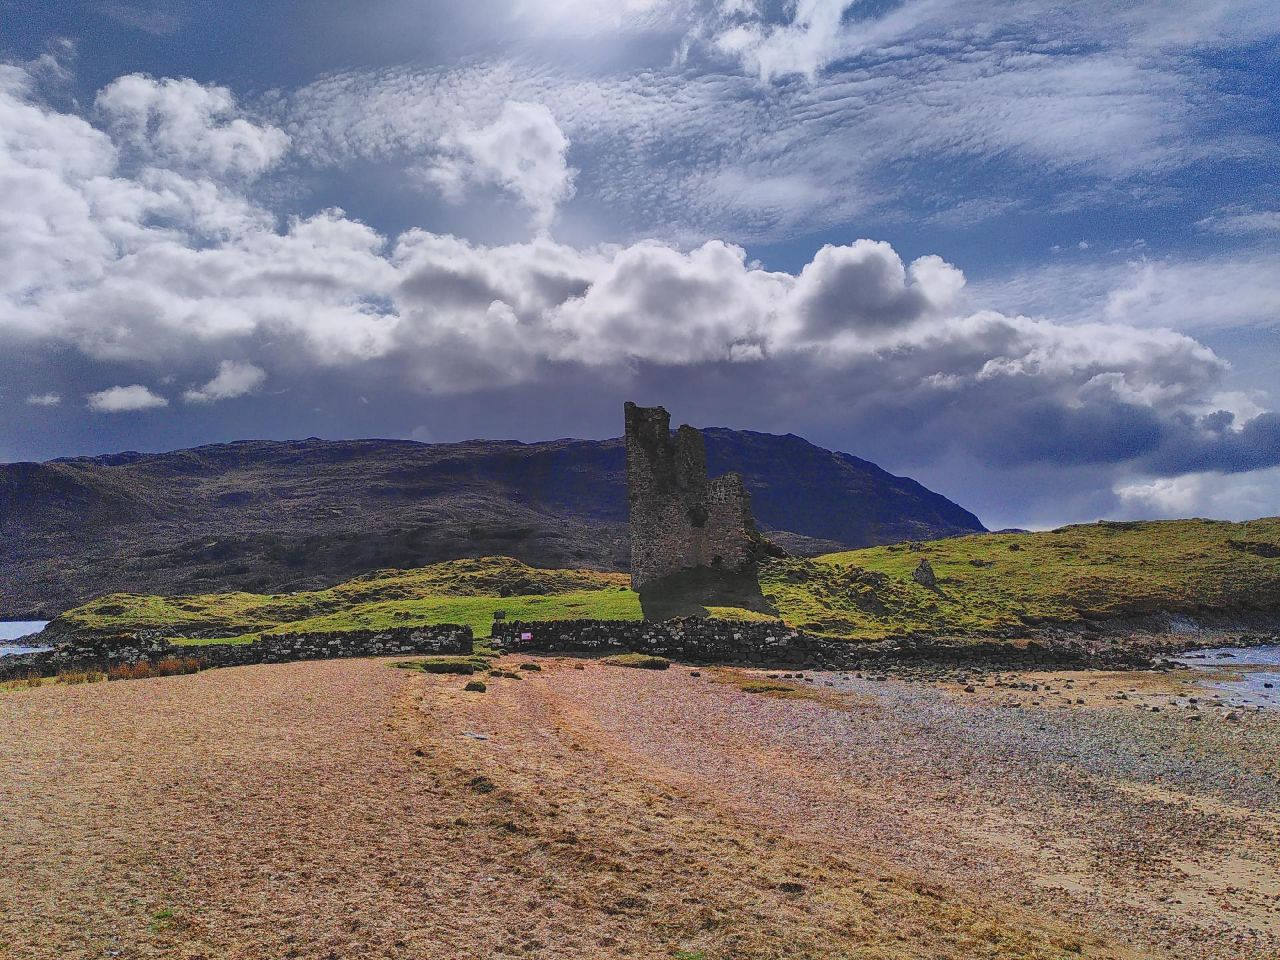 Foreground of shingle leading to a small stone-wall that holds green rocky land. The castle sits in the middle, torn almost in half, the wal on the right standing. Reasonably clear skies light the picture.